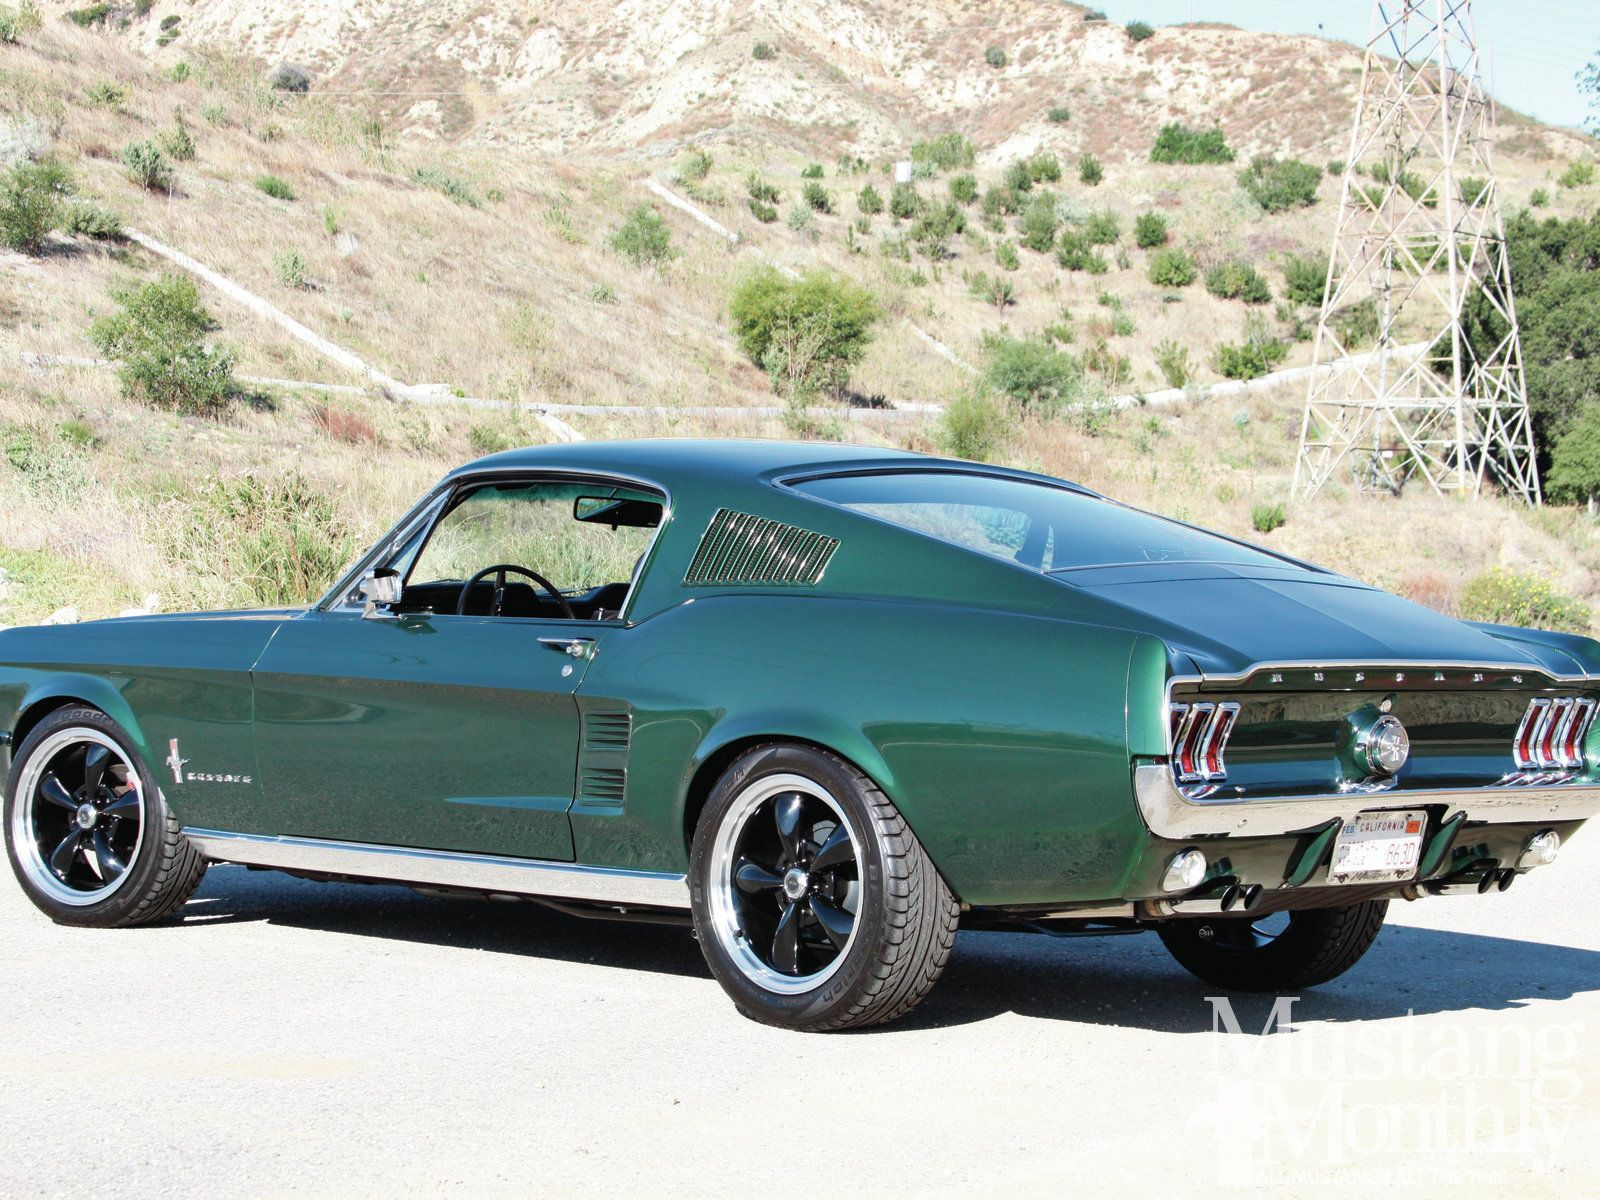 fastback 1967 green mustang fastback pinterest ford. Black Bedroom Furniture Sets. Home Design Ideas